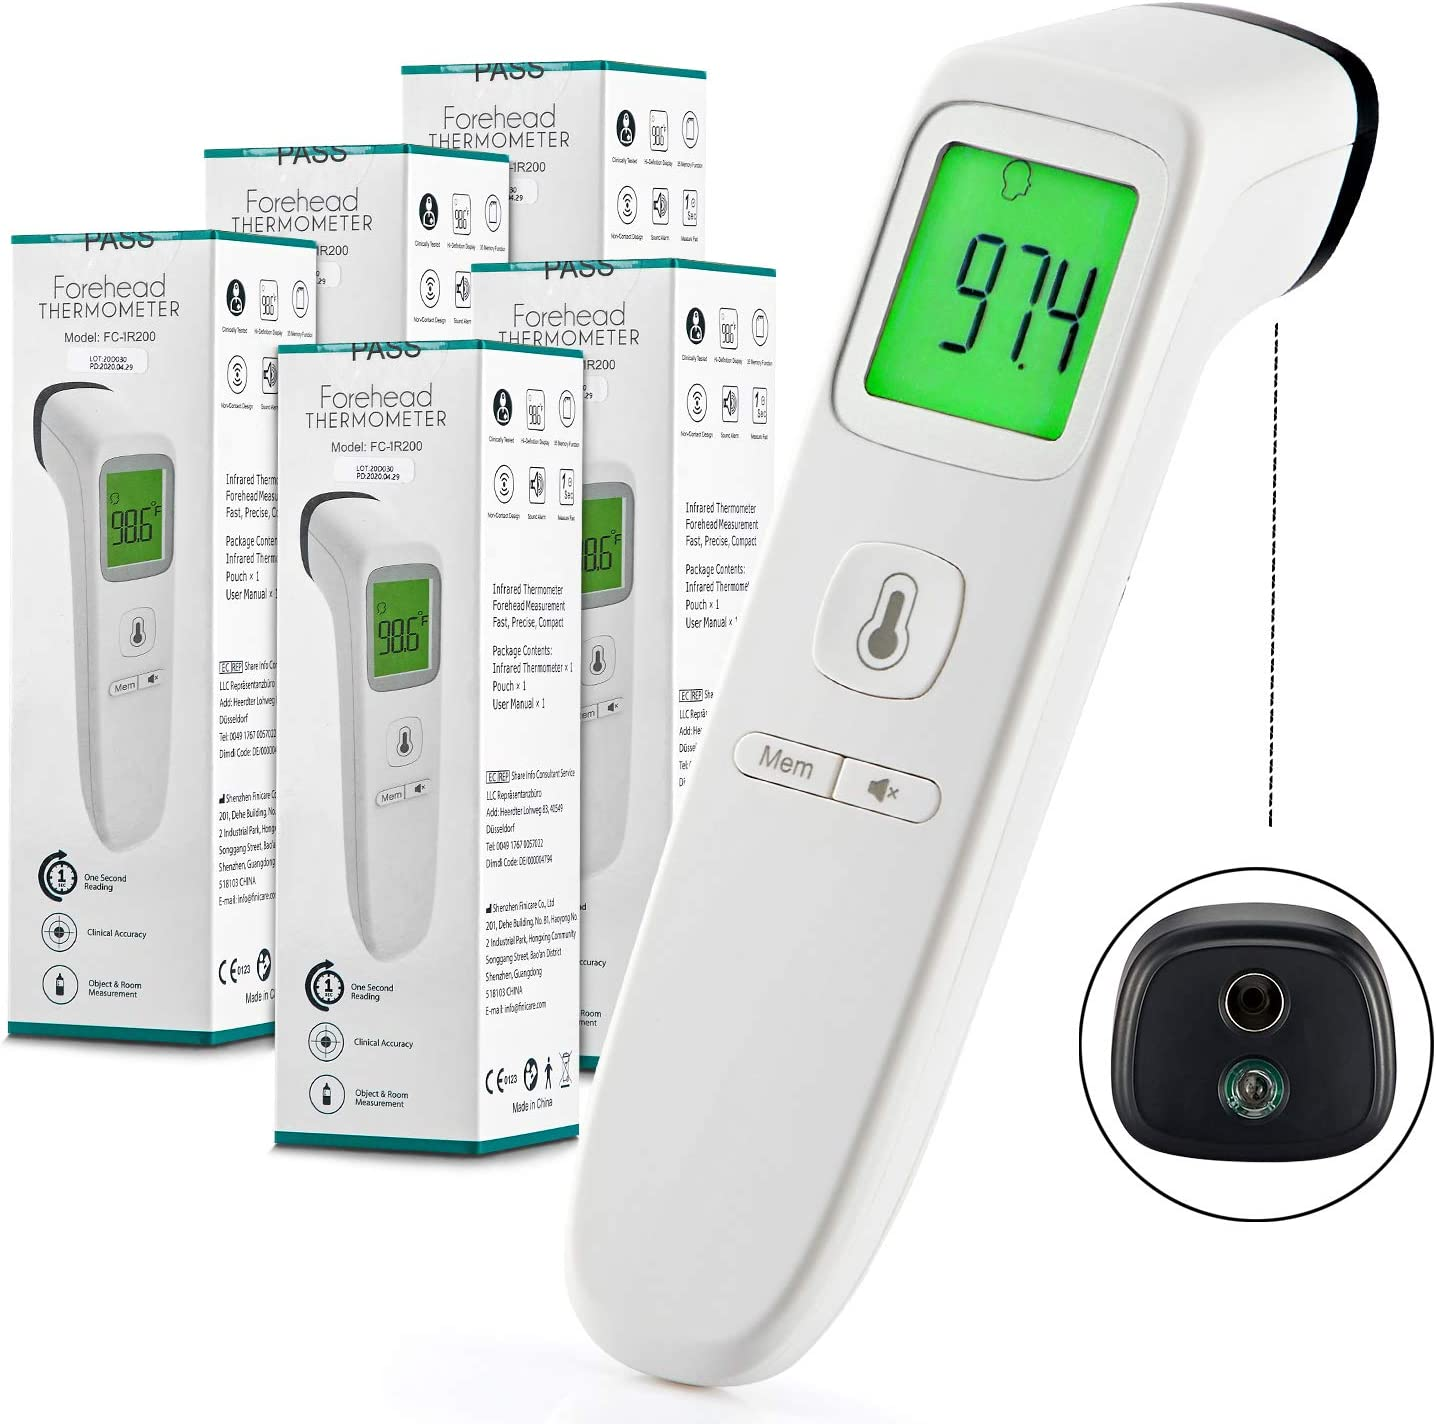 Non-Contact Digital Thermometer with Instant Accurate Reading Forehead Thermometer Digital Infrared Thermometer for Kids and Adults Fever Alarm and Memory Function